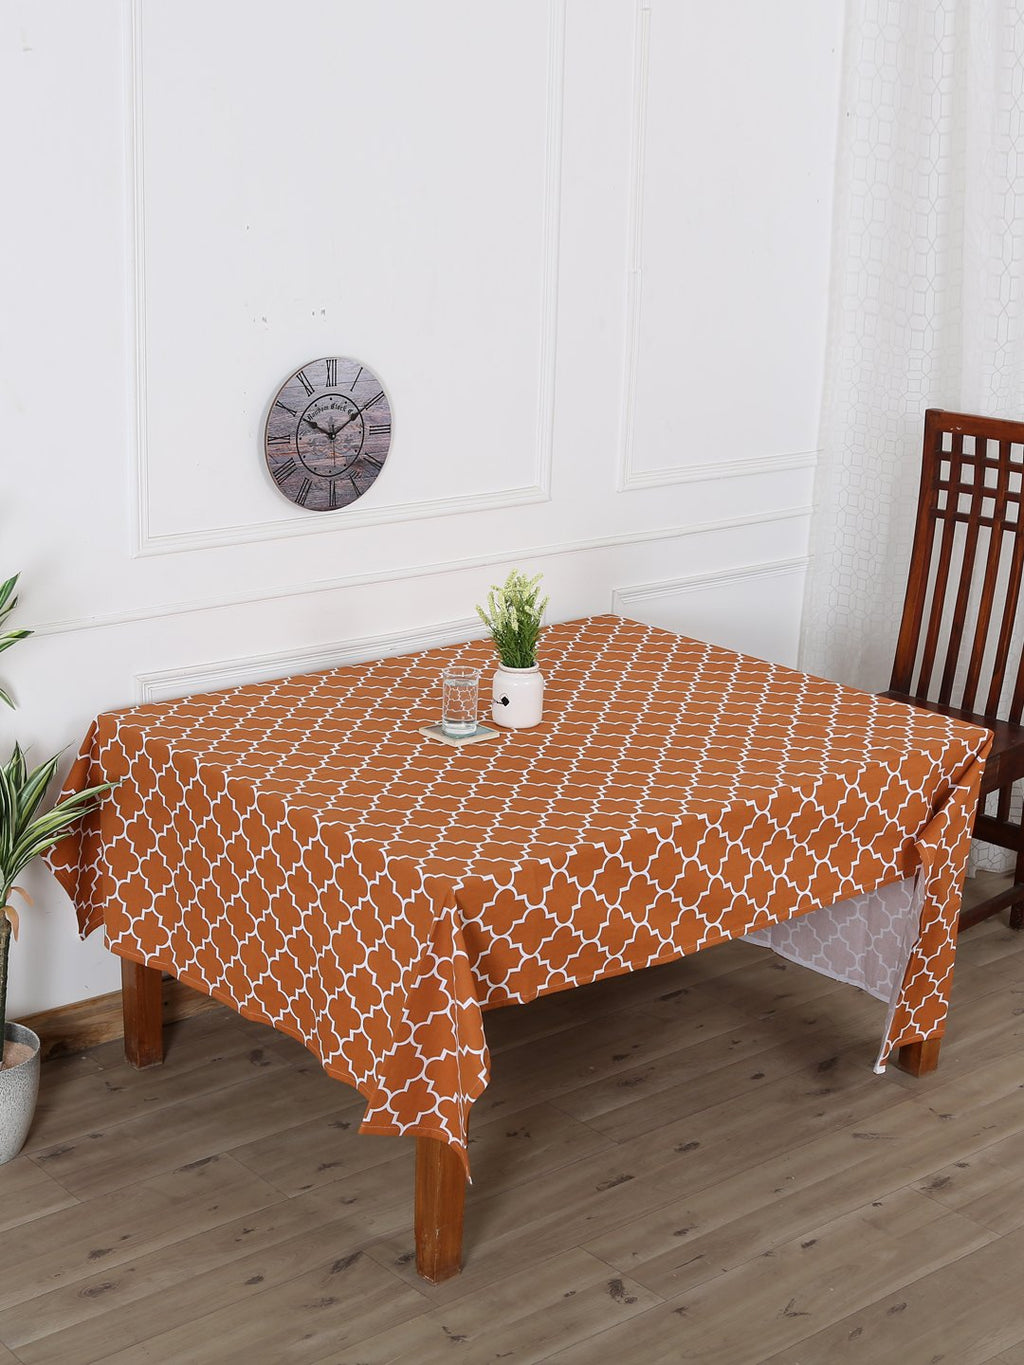 Handcrafted Persian Legacyr Table Cover